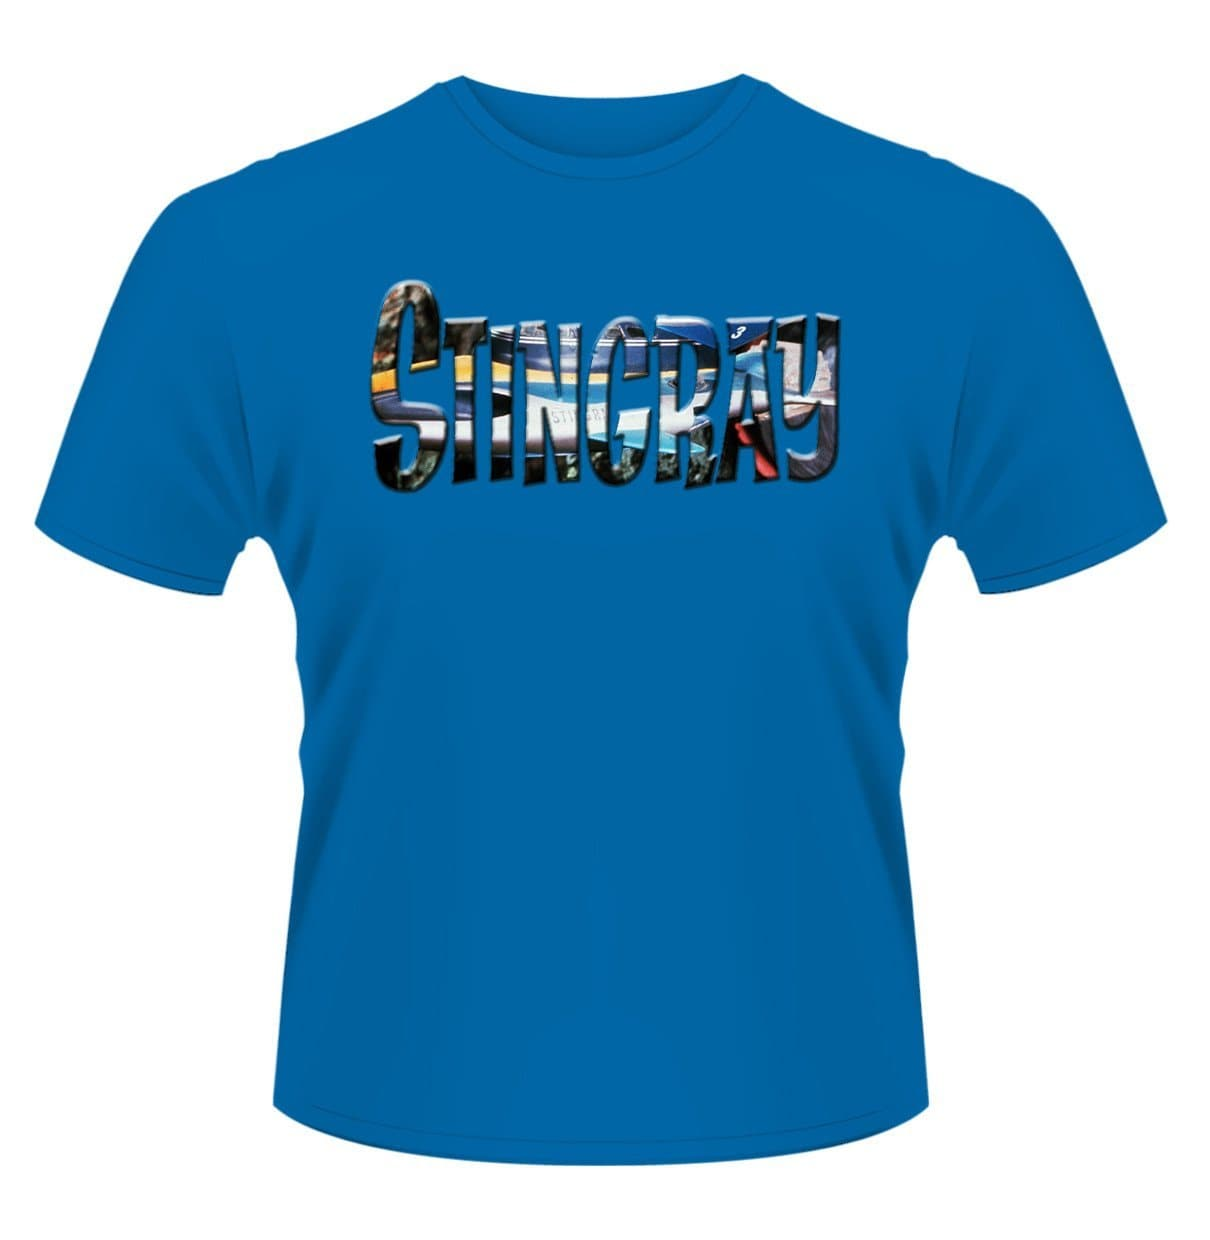 Stingray Logo T-shirt - The Gerry Anderson Store